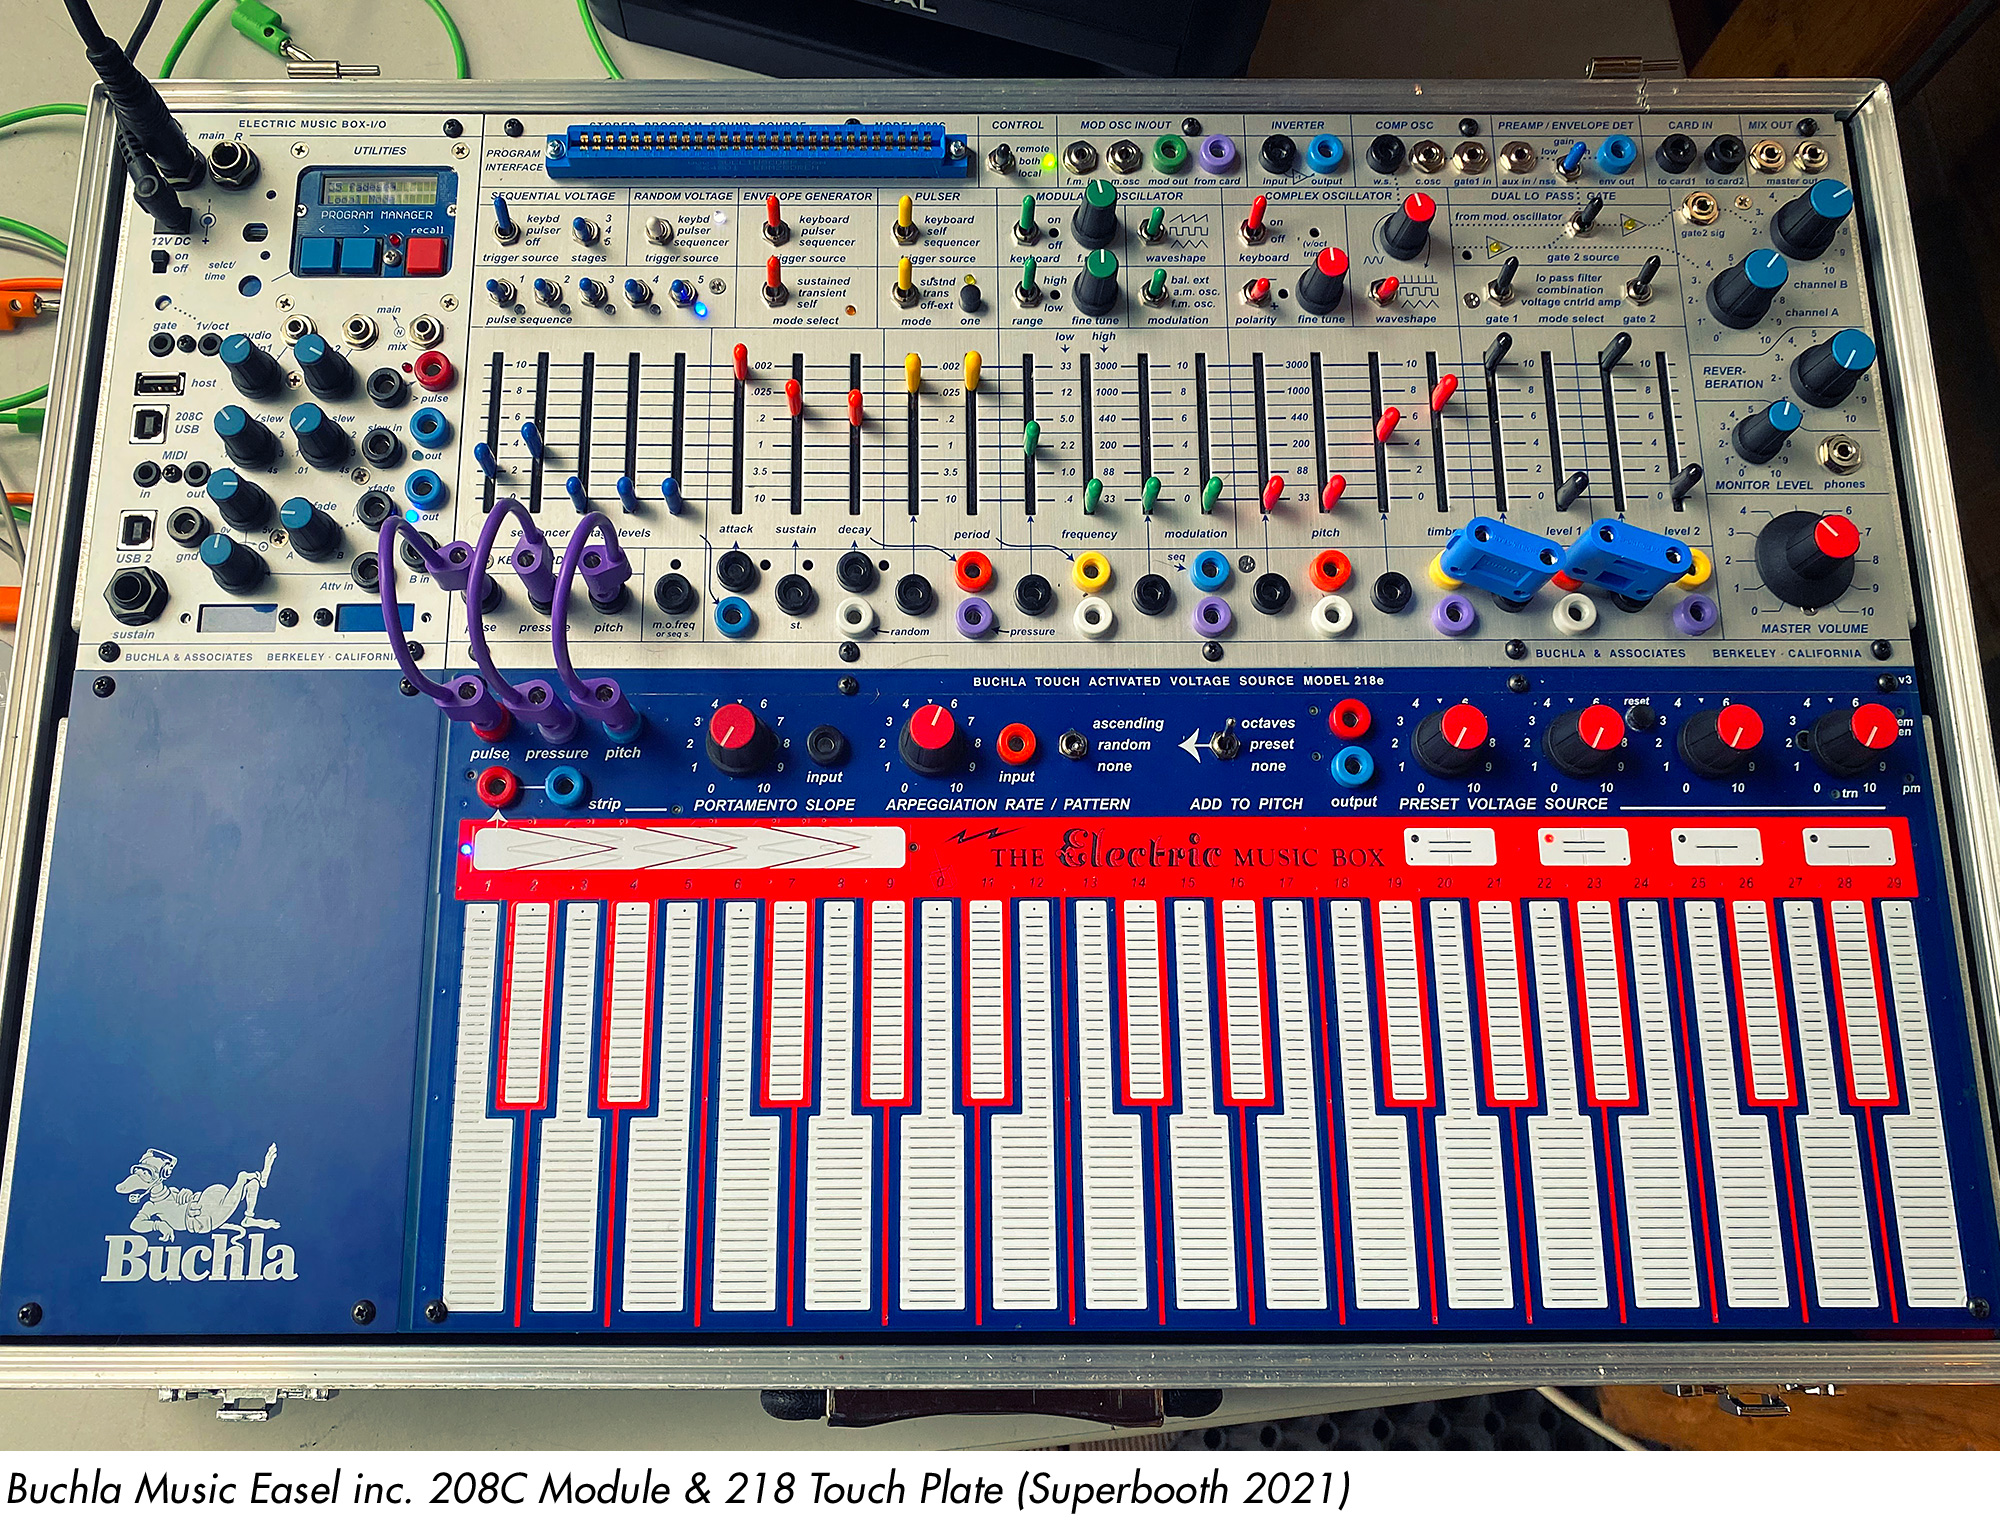 Buchla Music Easel (Superbooth 2021)